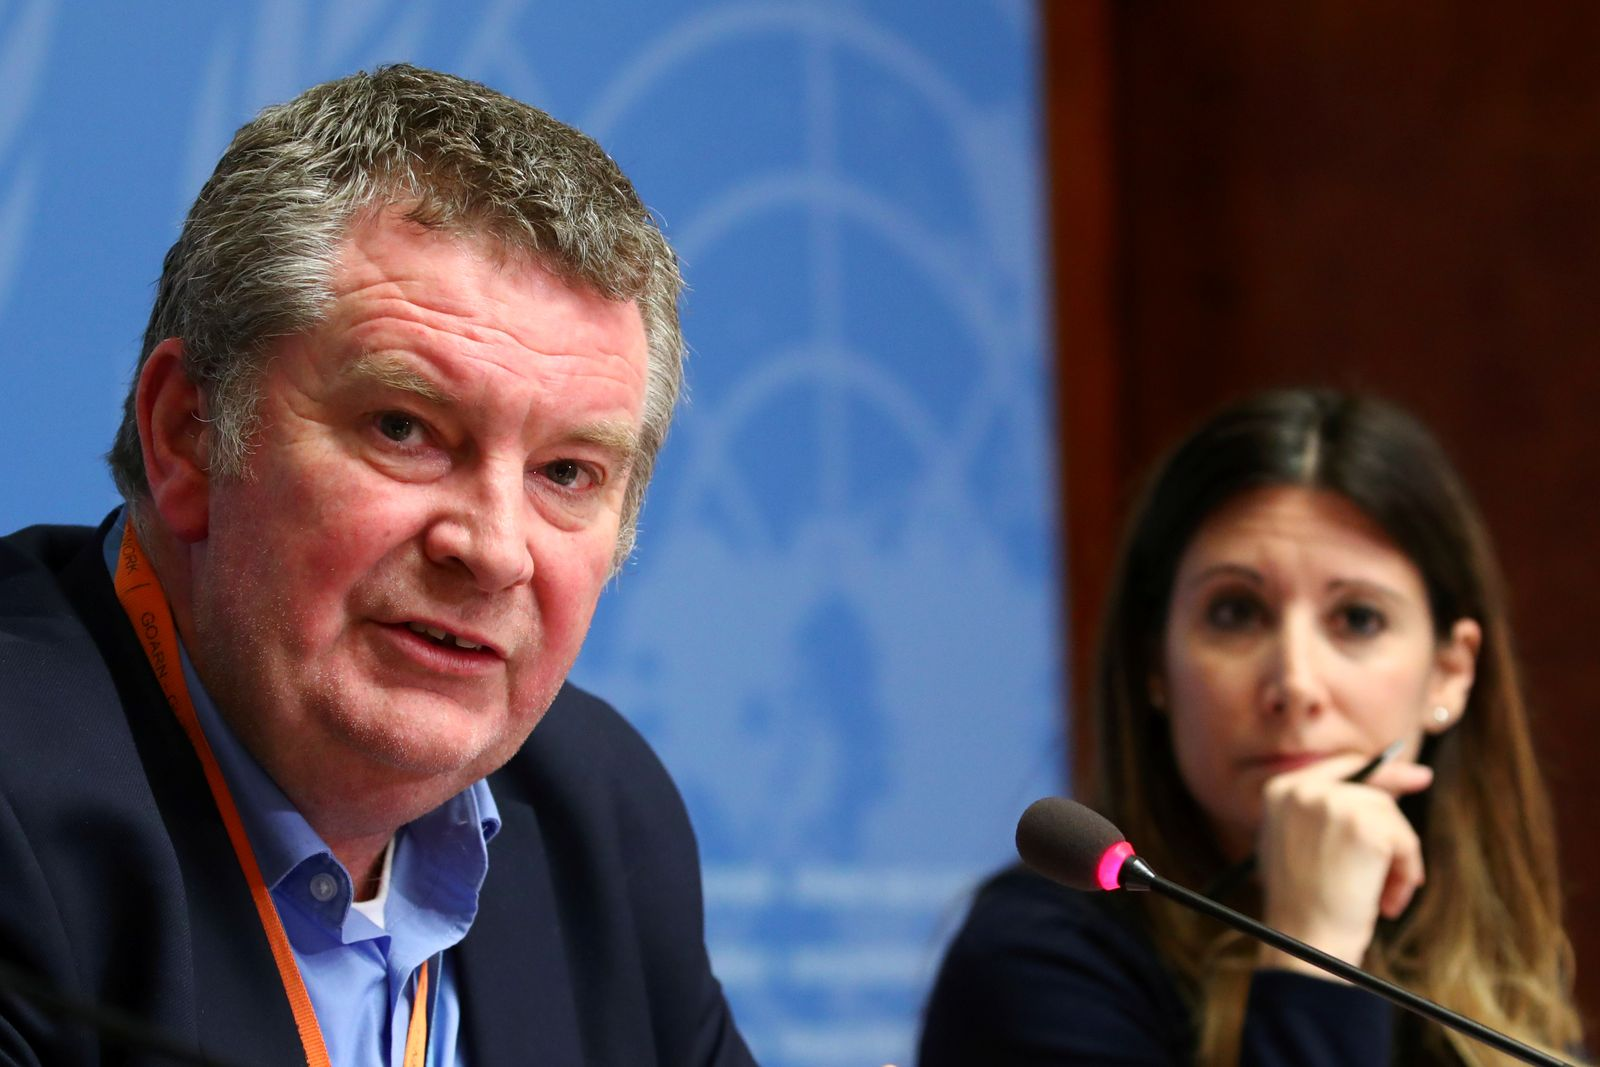 Michael J. Ryan, Executive Director of the World Health Organization (WHO) Health Emergencies Programme speaks during a news conference on the situation of the coronavirus, in Geneva